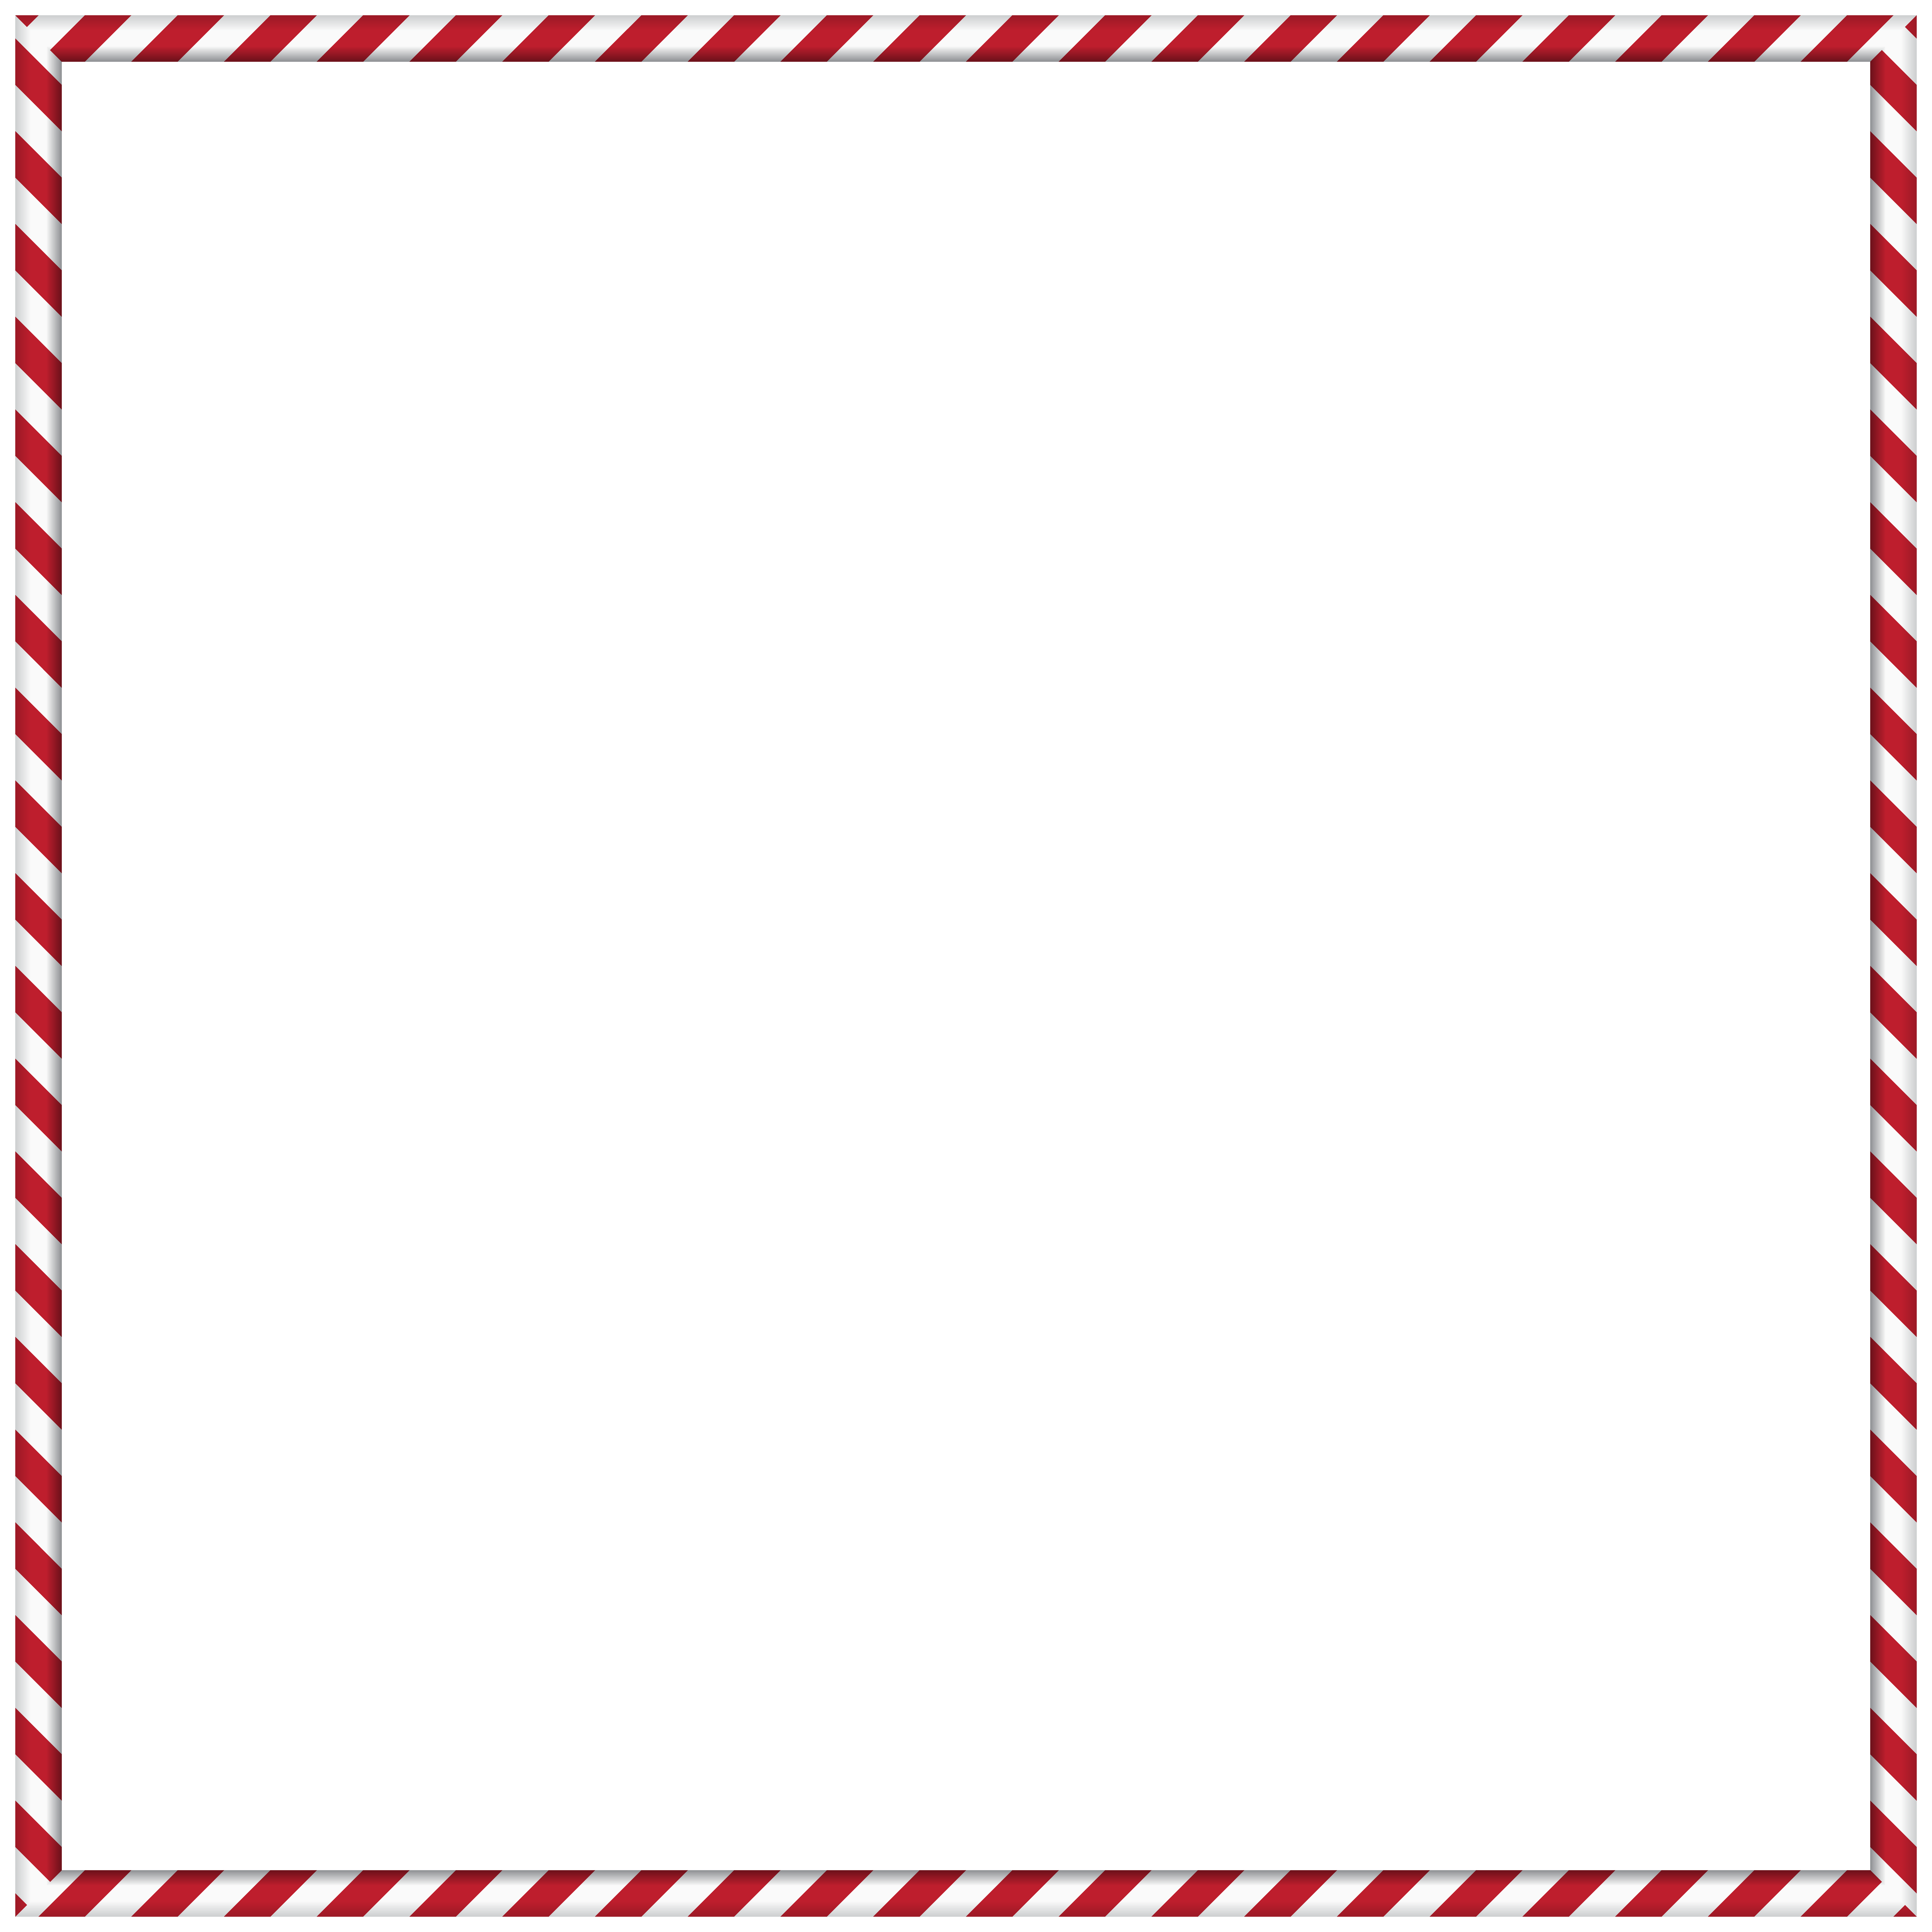 Candy Cane Border PNG Clip Art.